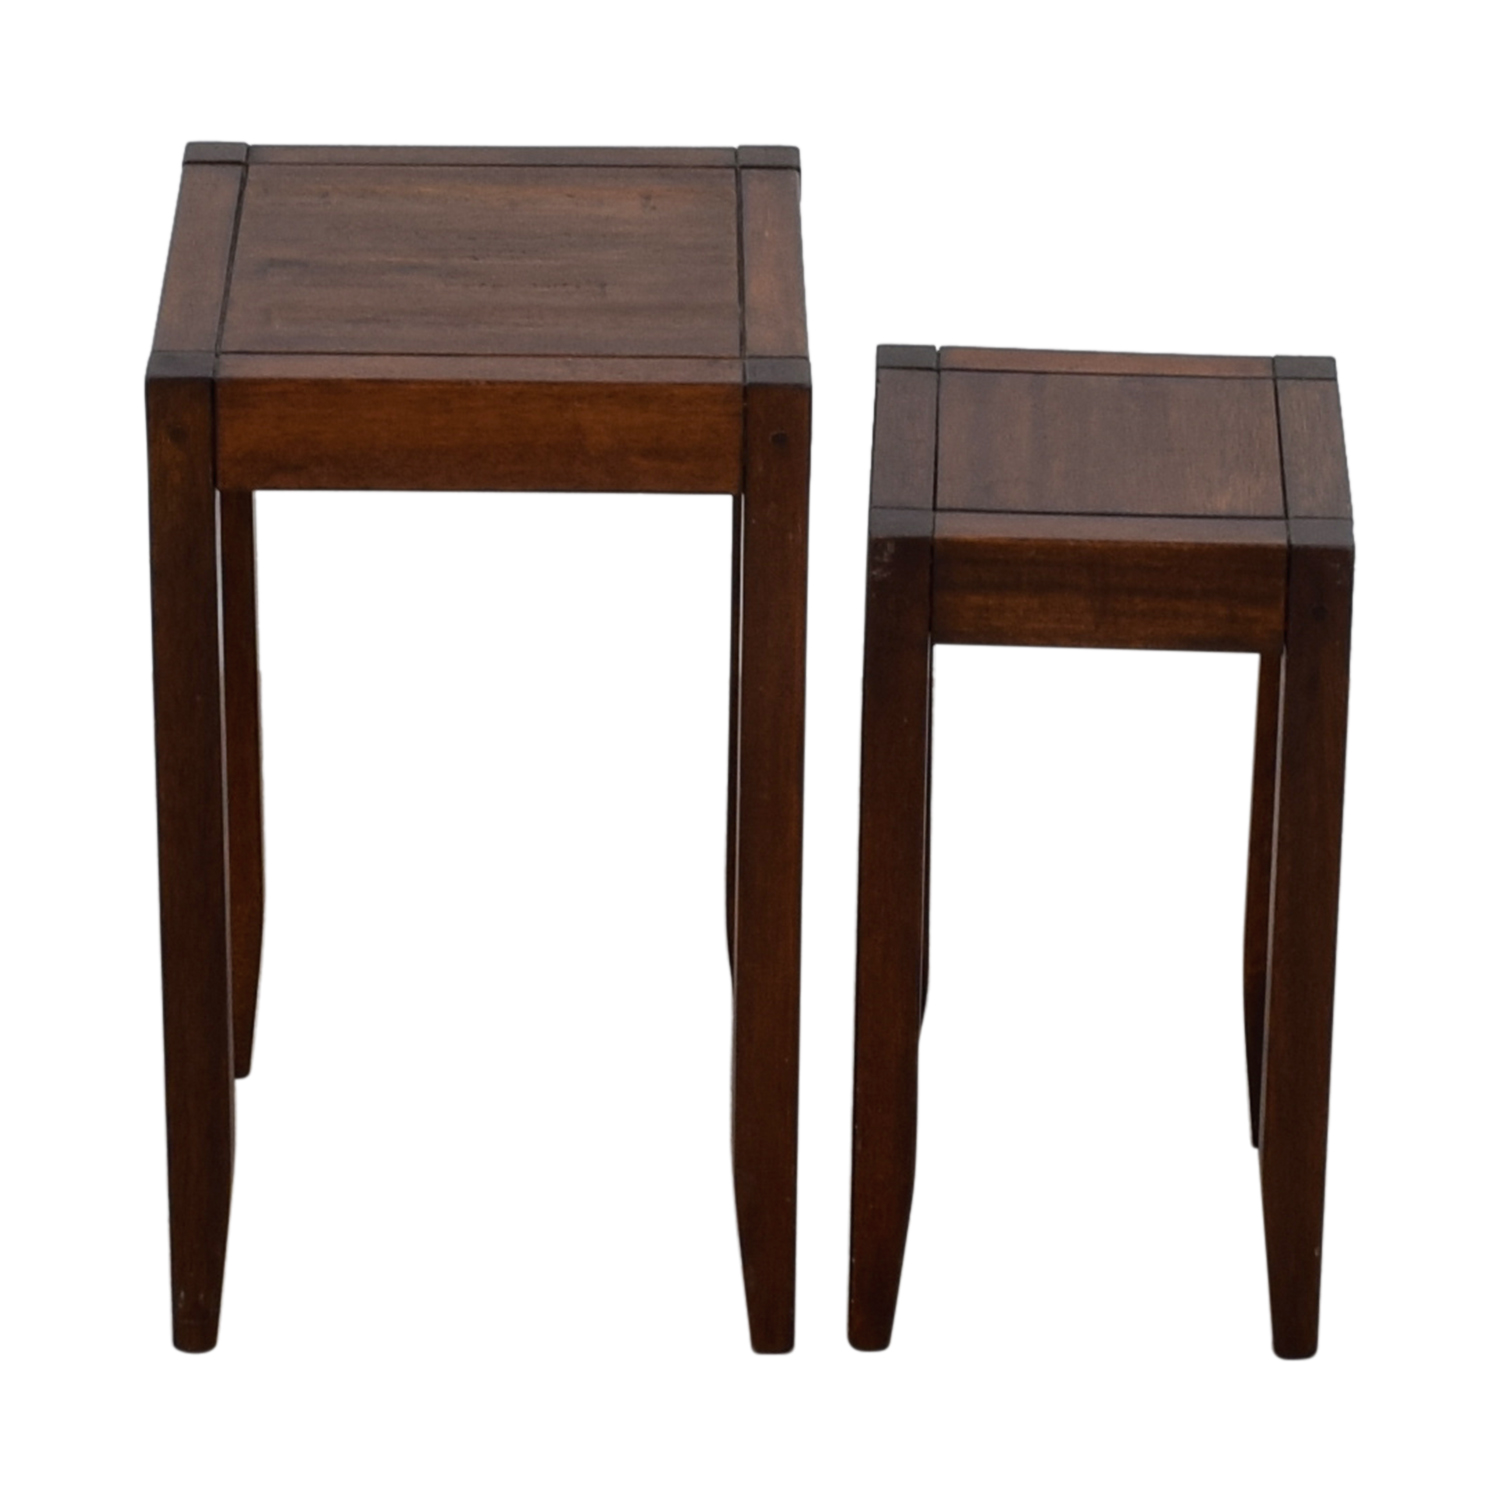 shop Pottery Barn Block Wooden Nesting Tables Pottery Barn Accent Tables